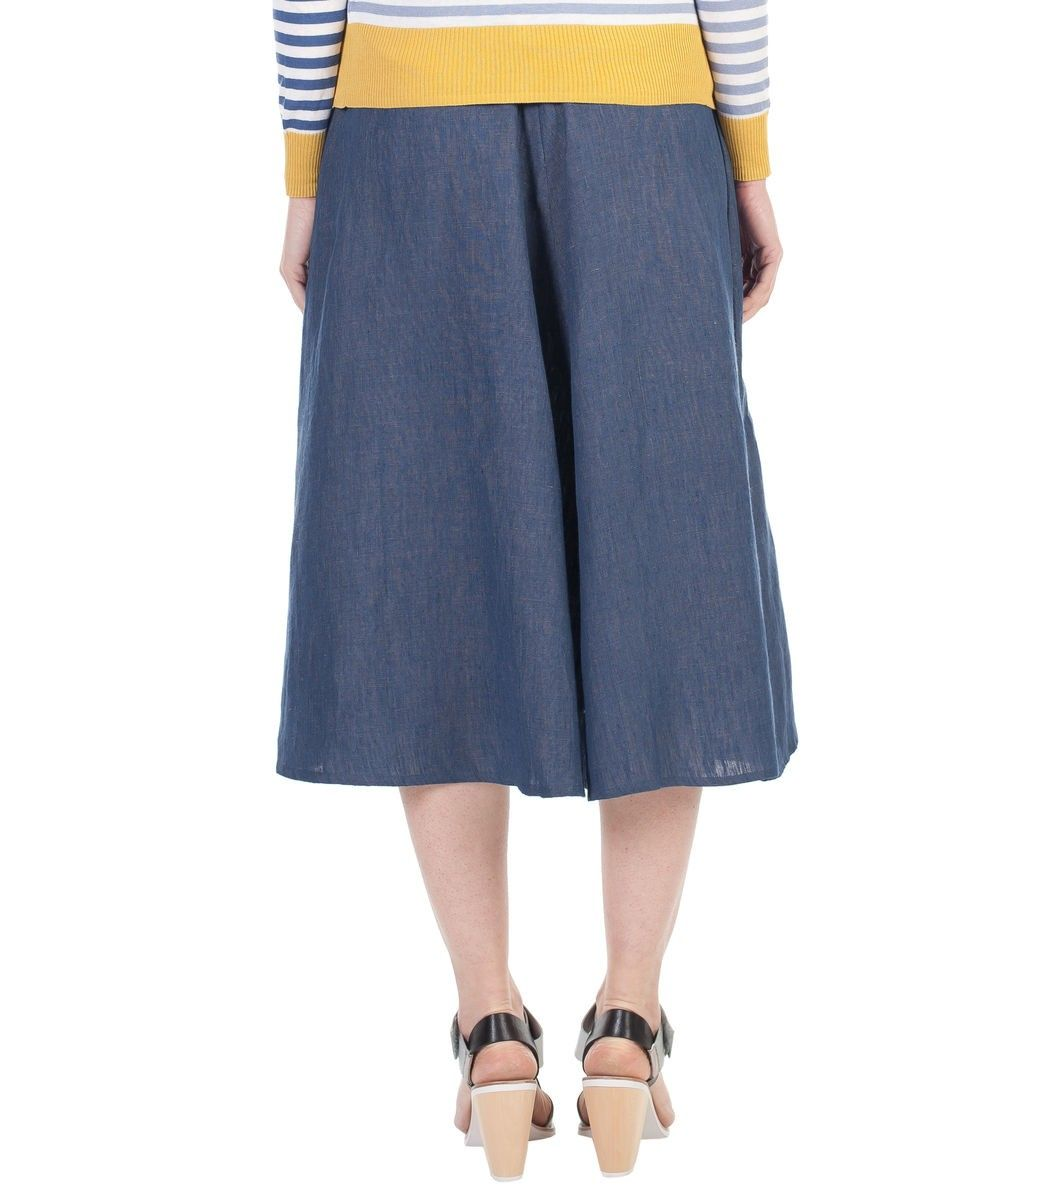 Gorman Online - Cornflower Skirt